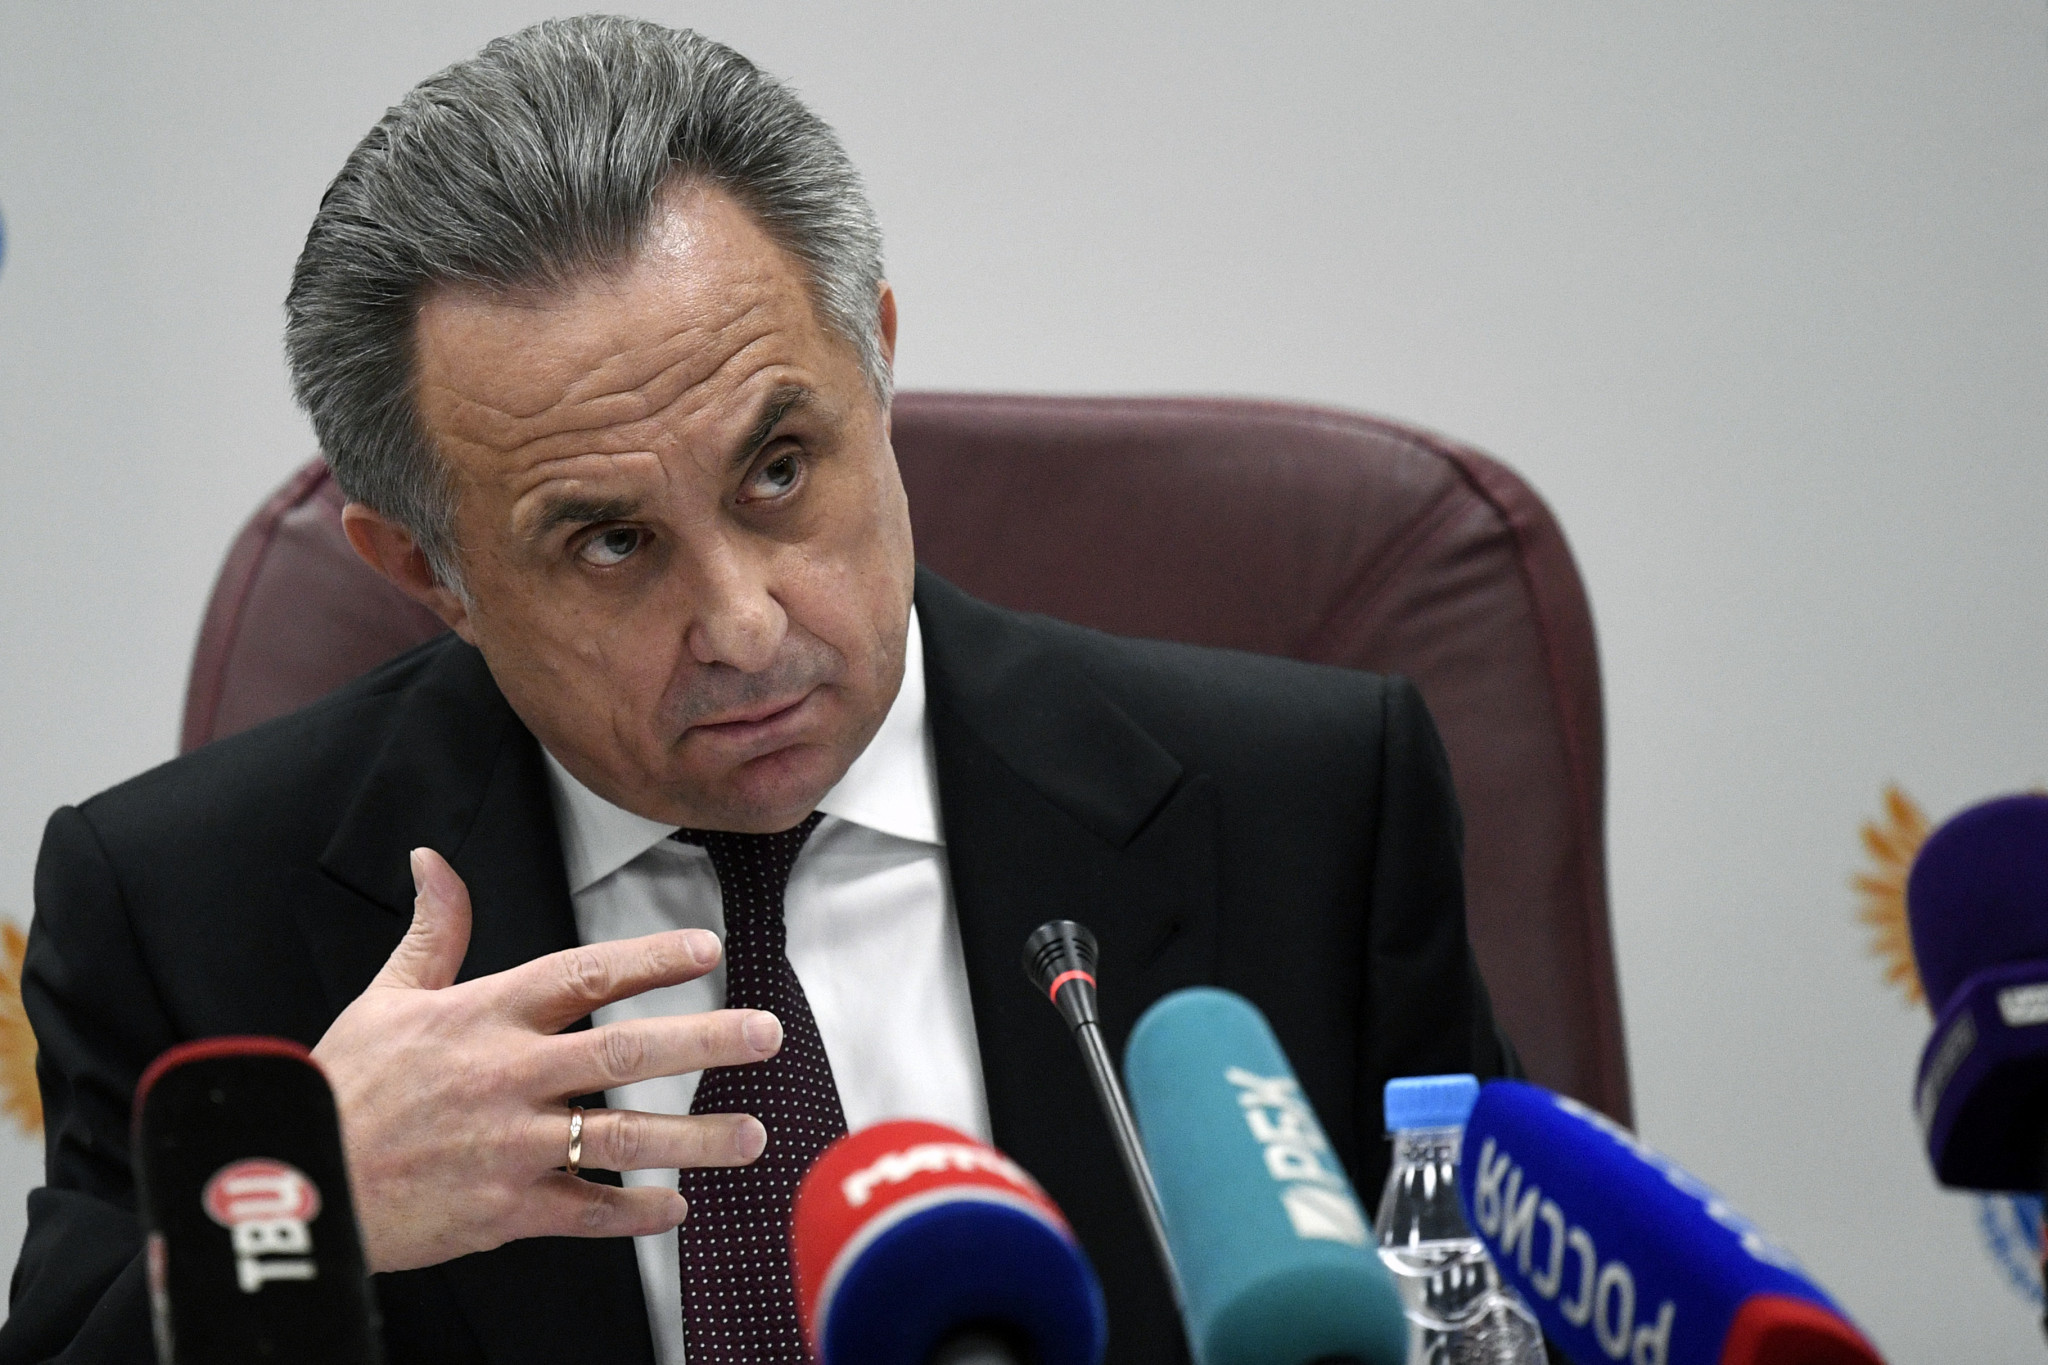 Mutko replaced as Deputy Prime Minister for sport and put in control of construction in Russian Government reshuffle